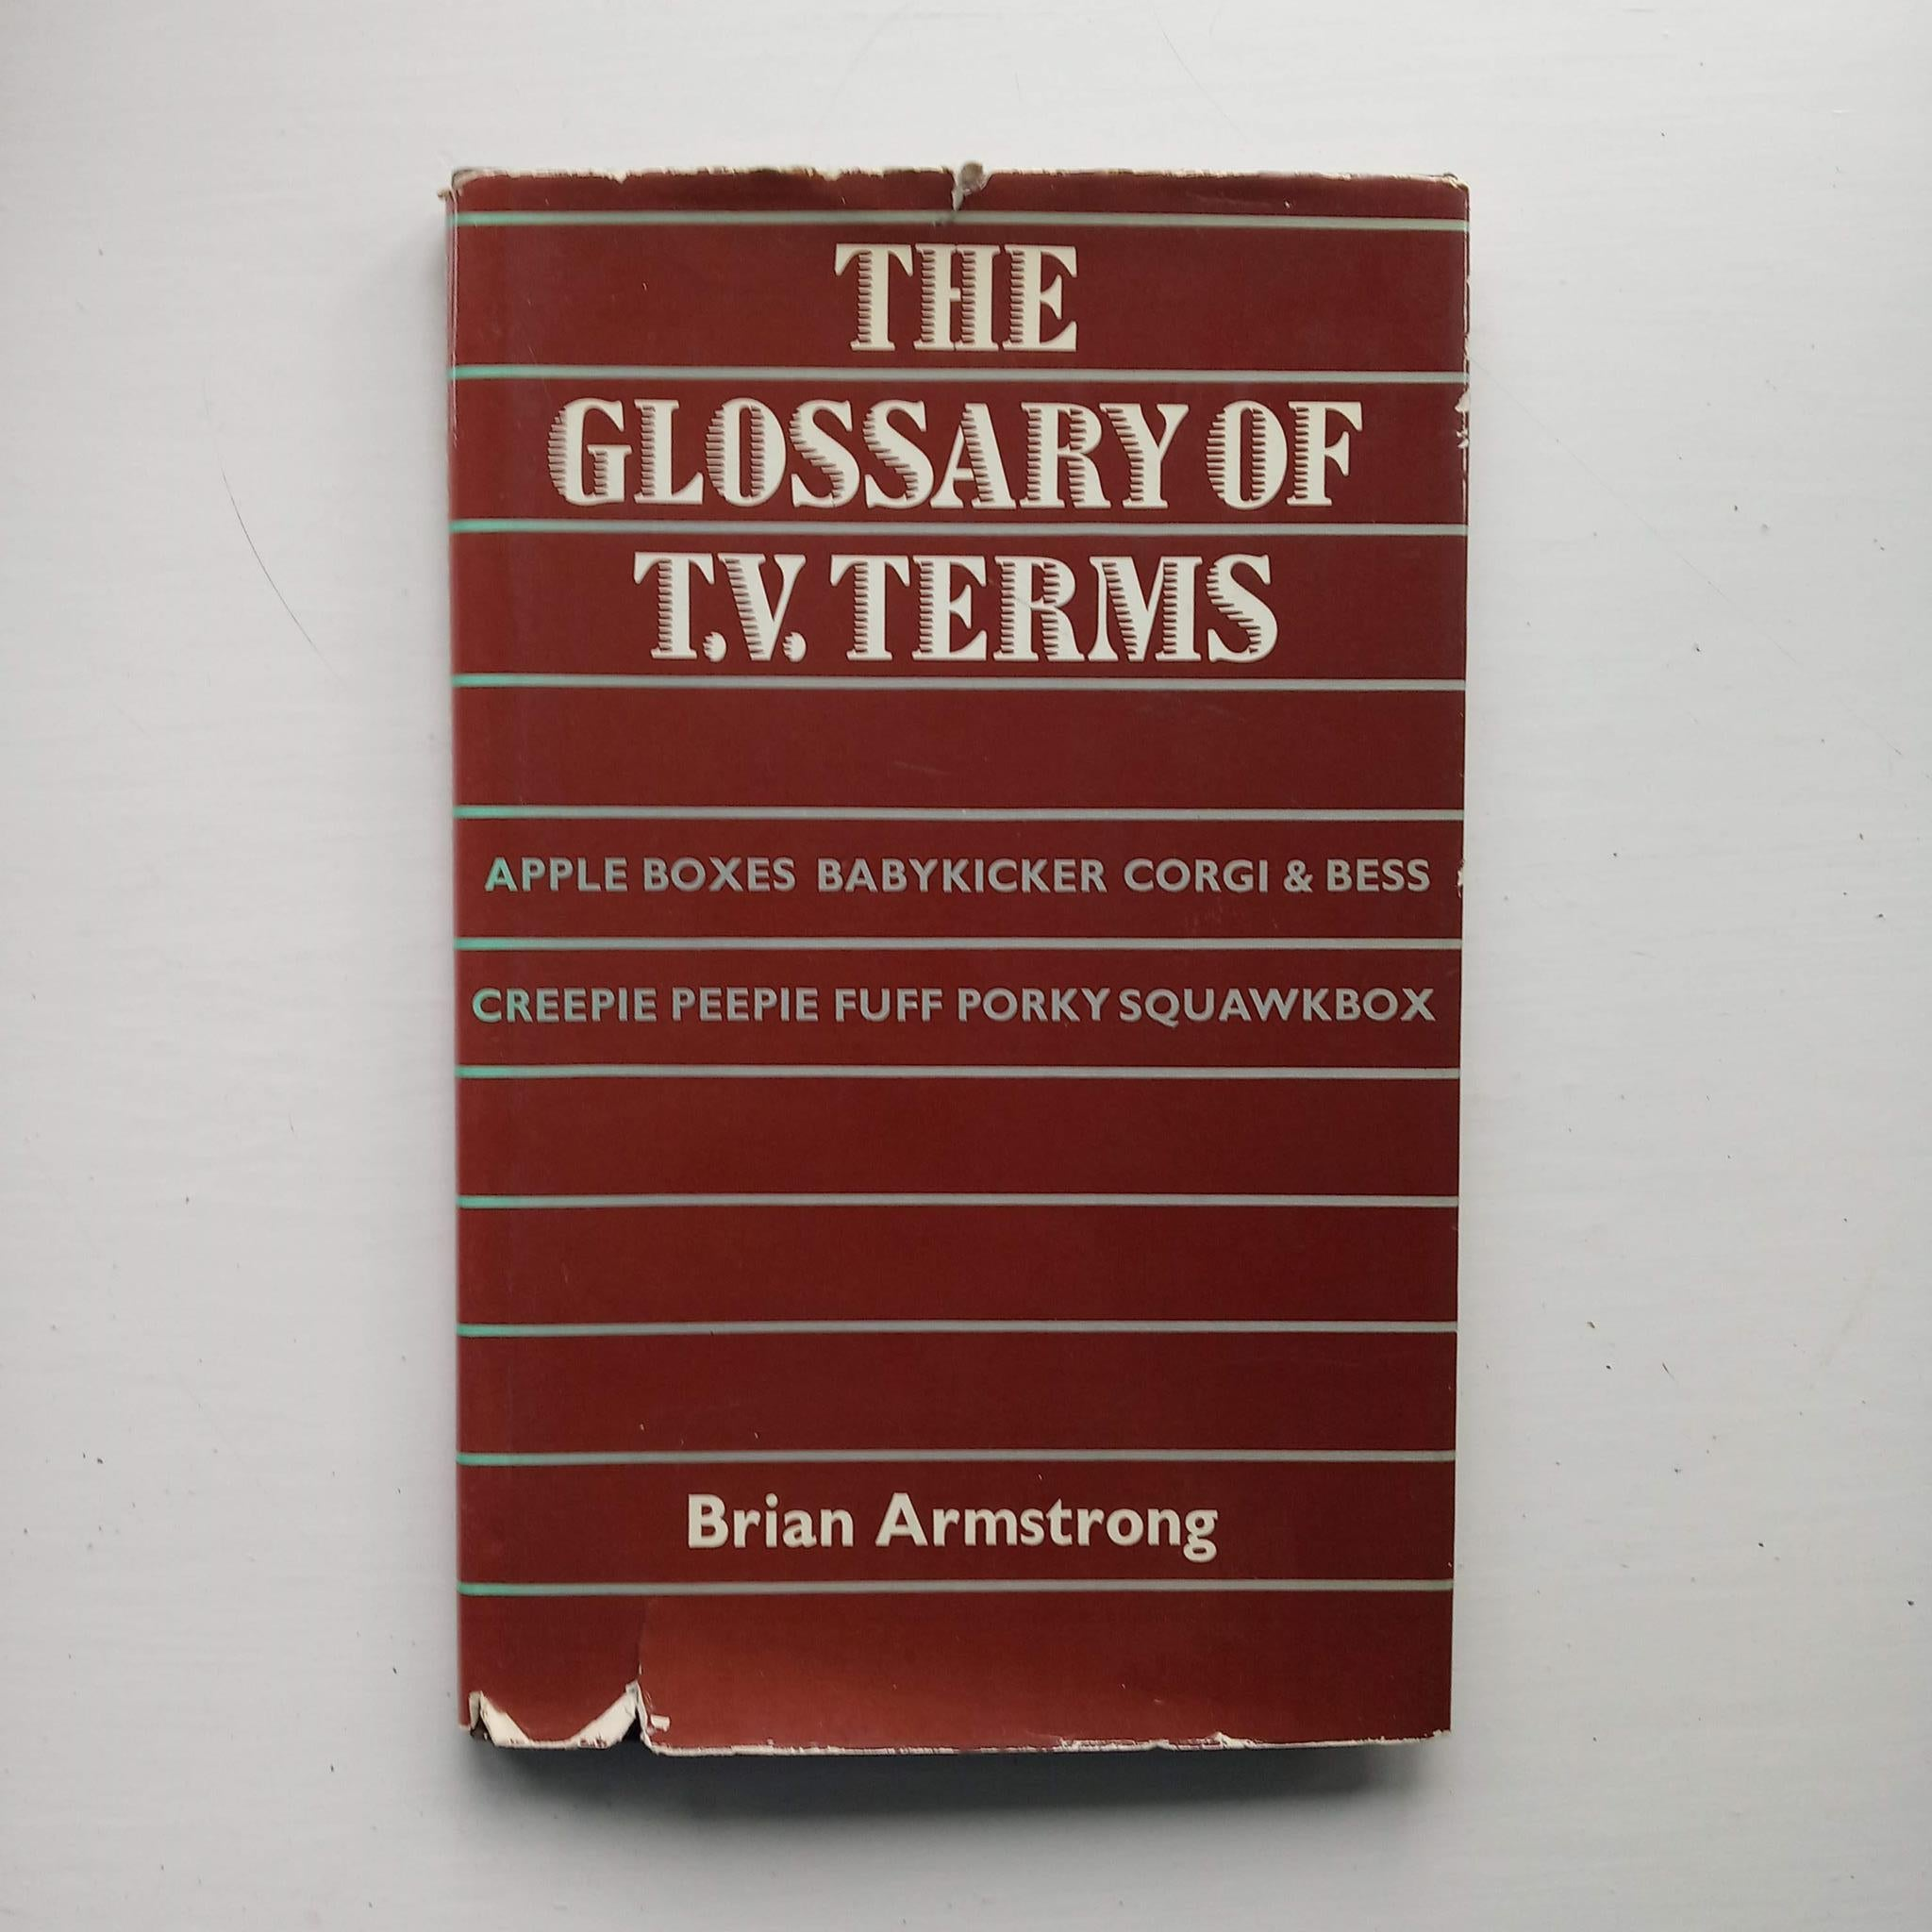 The Glossary of TV Terms by Brian Armstrong